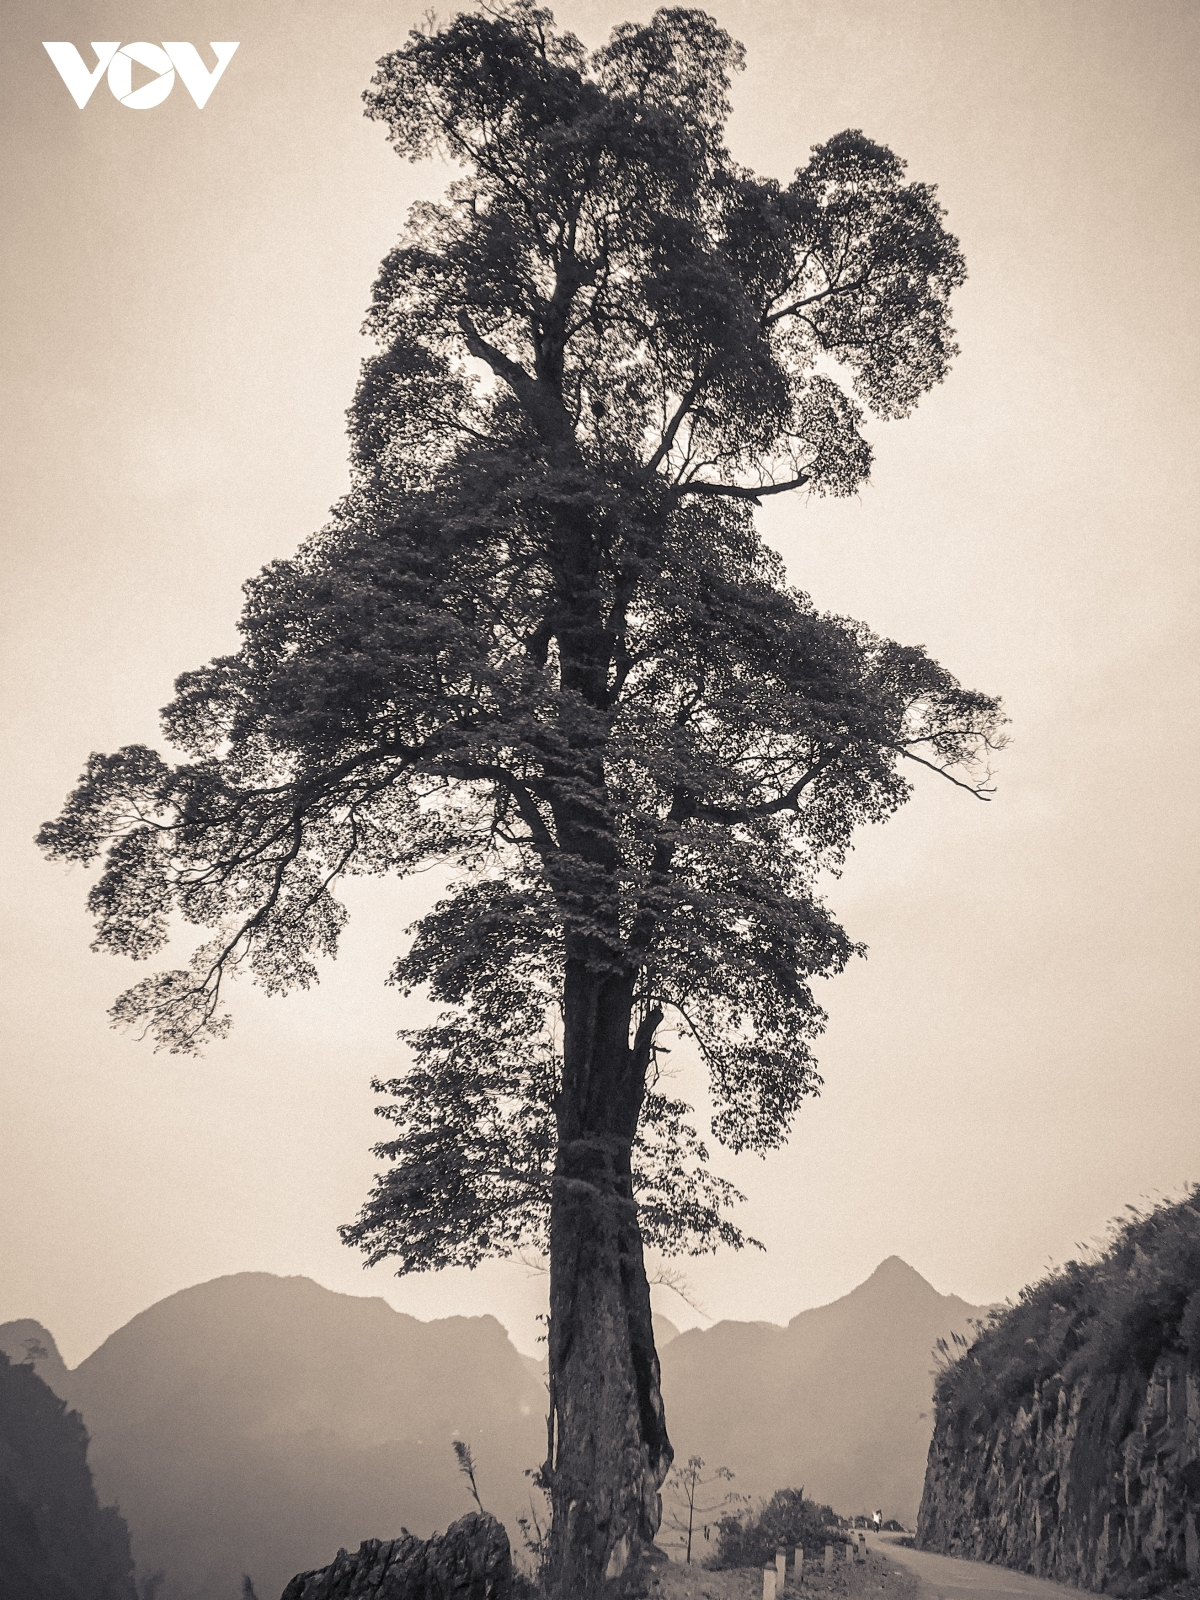 An old giant tree, found in Can Ty commune of Quan Ba district, attracts plenty of visiting photographers.